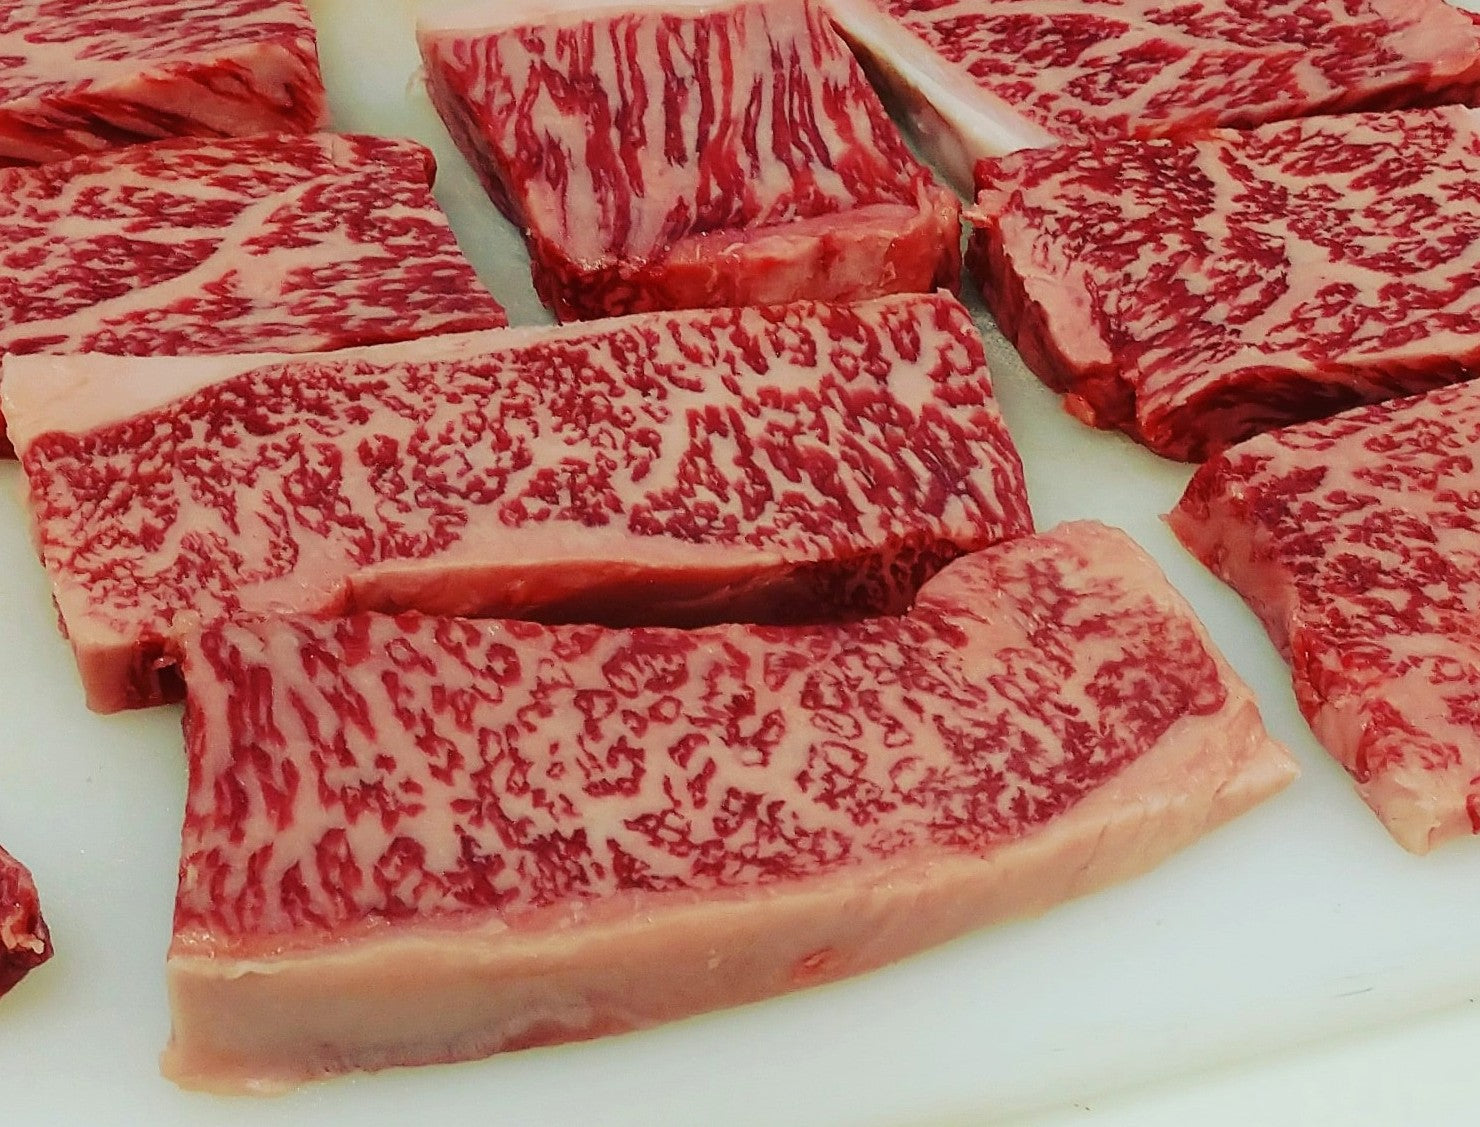 A5 Japanese Wagyu Strip (4-5 lb Piece) Sold Out!